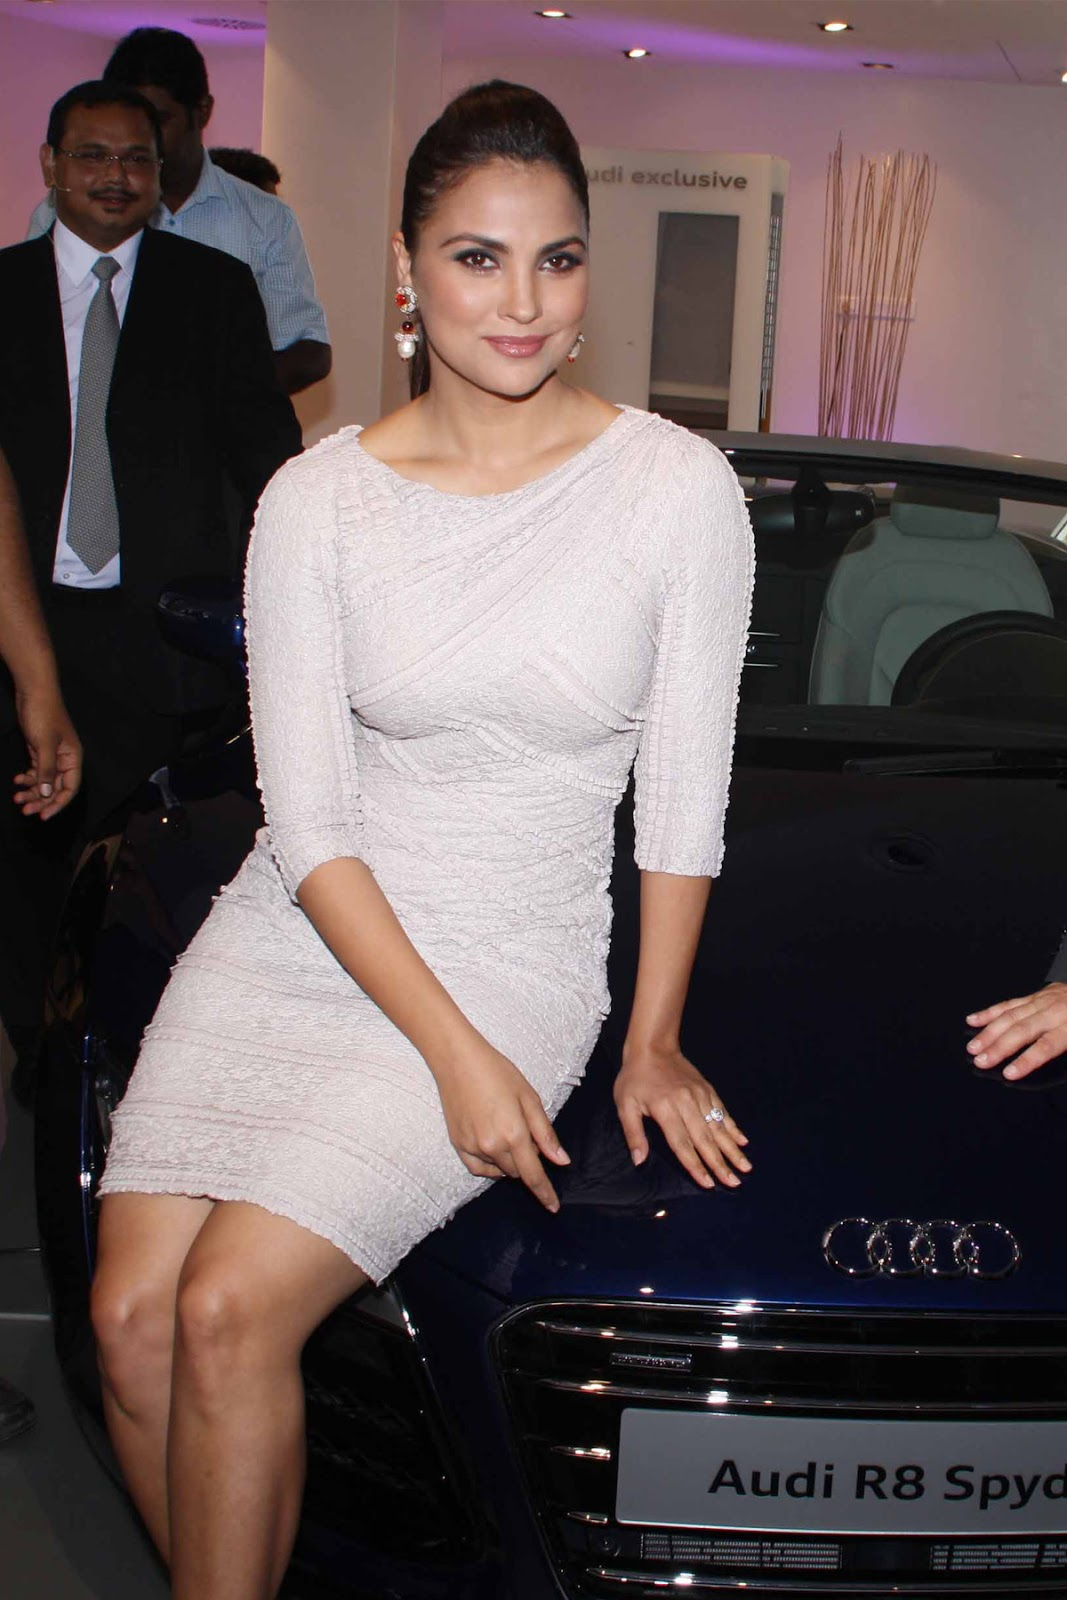 Lara dutta audi car launch photos